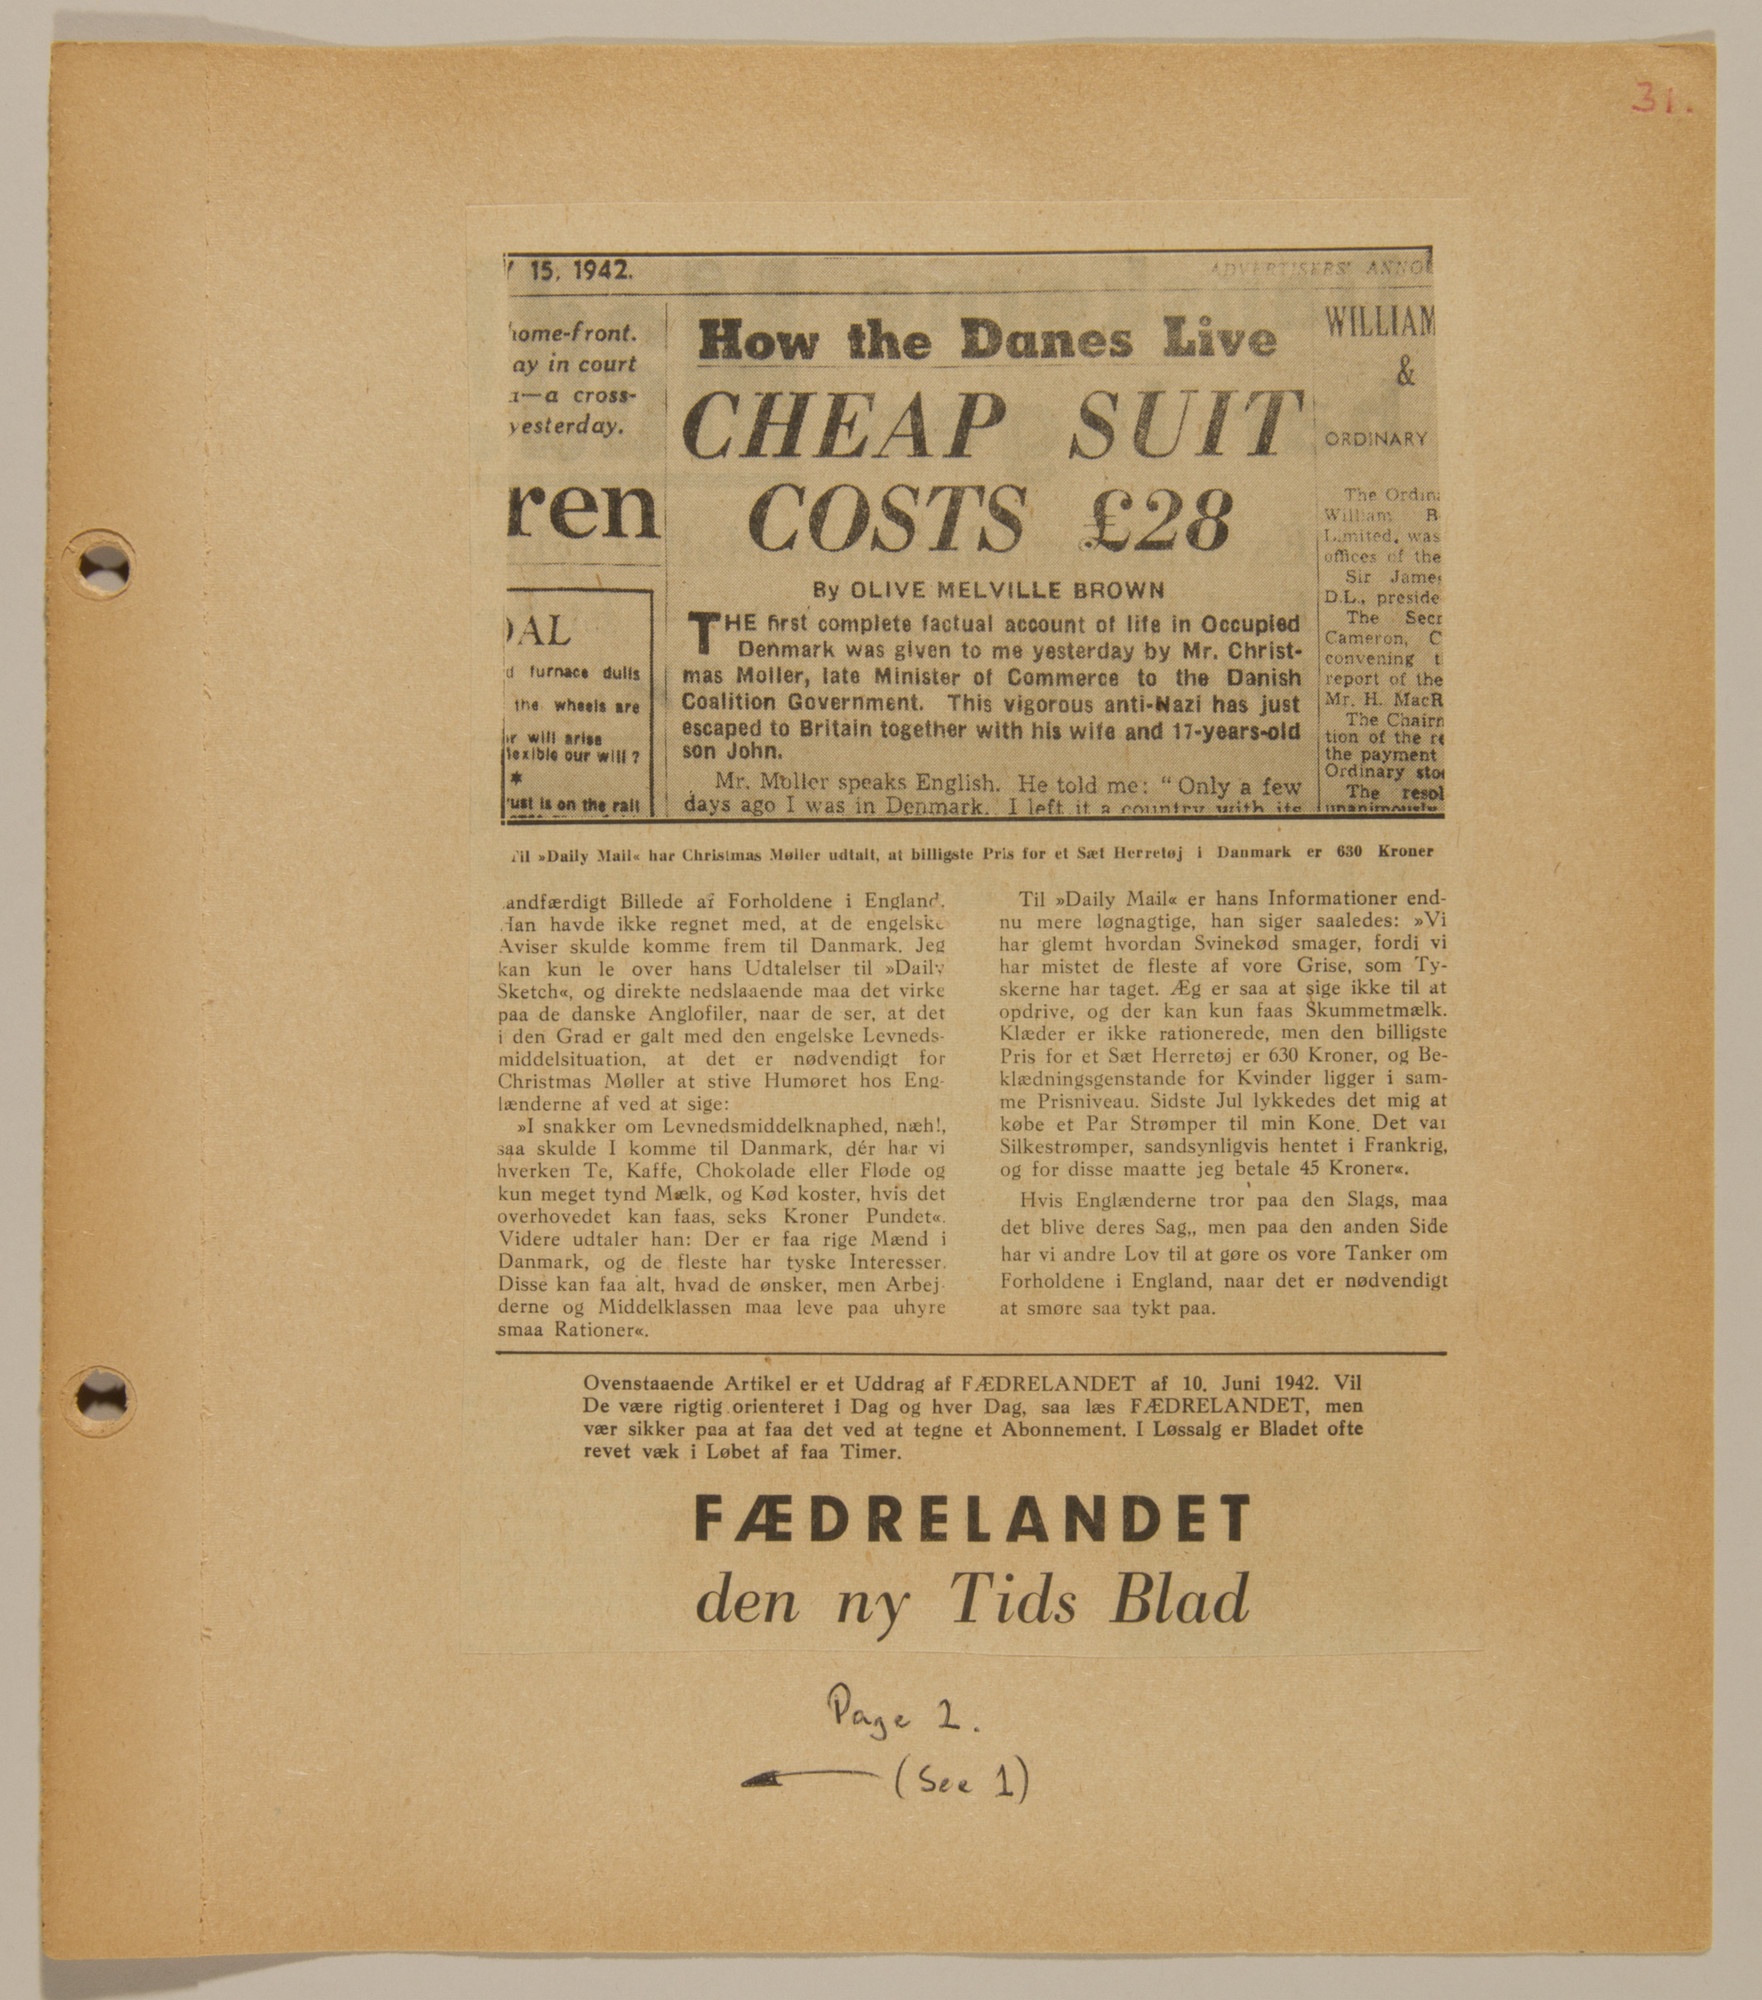 Page from volume four of a set of scrapbooks compiled by Bjorn Sibbern, a Danish policeman and resistance member, documenting the German occupation of Denmark.  This page contains a clipping from a pro-German newspaper attacking from minister, Christian Moller, after his escape to England.